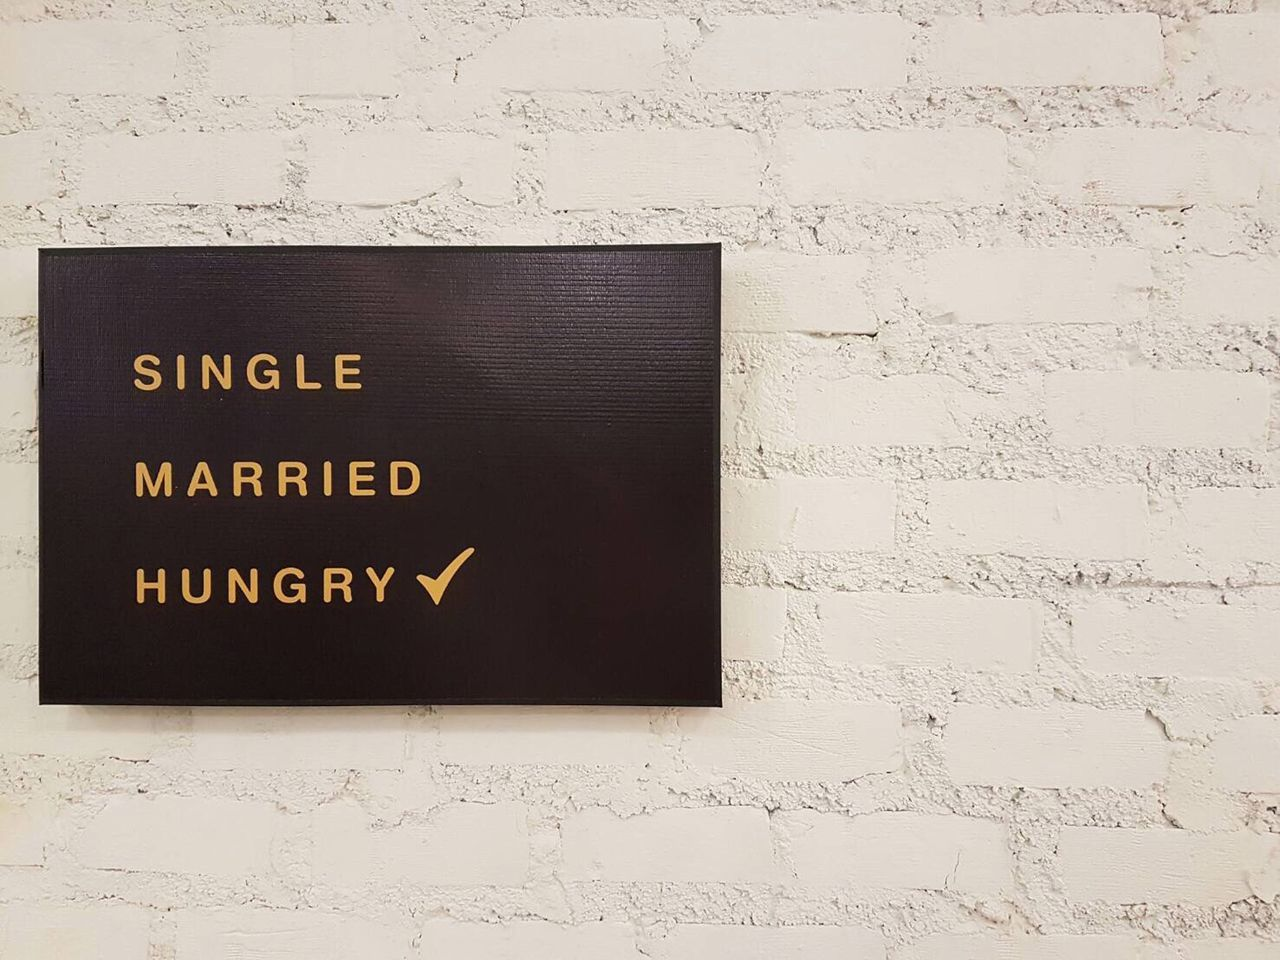 Status Hungry Funny Inscription Template Wall Single Married Restaurant Decoration Wallpaper Choose Check Squre Relationship Humorous Background Frame